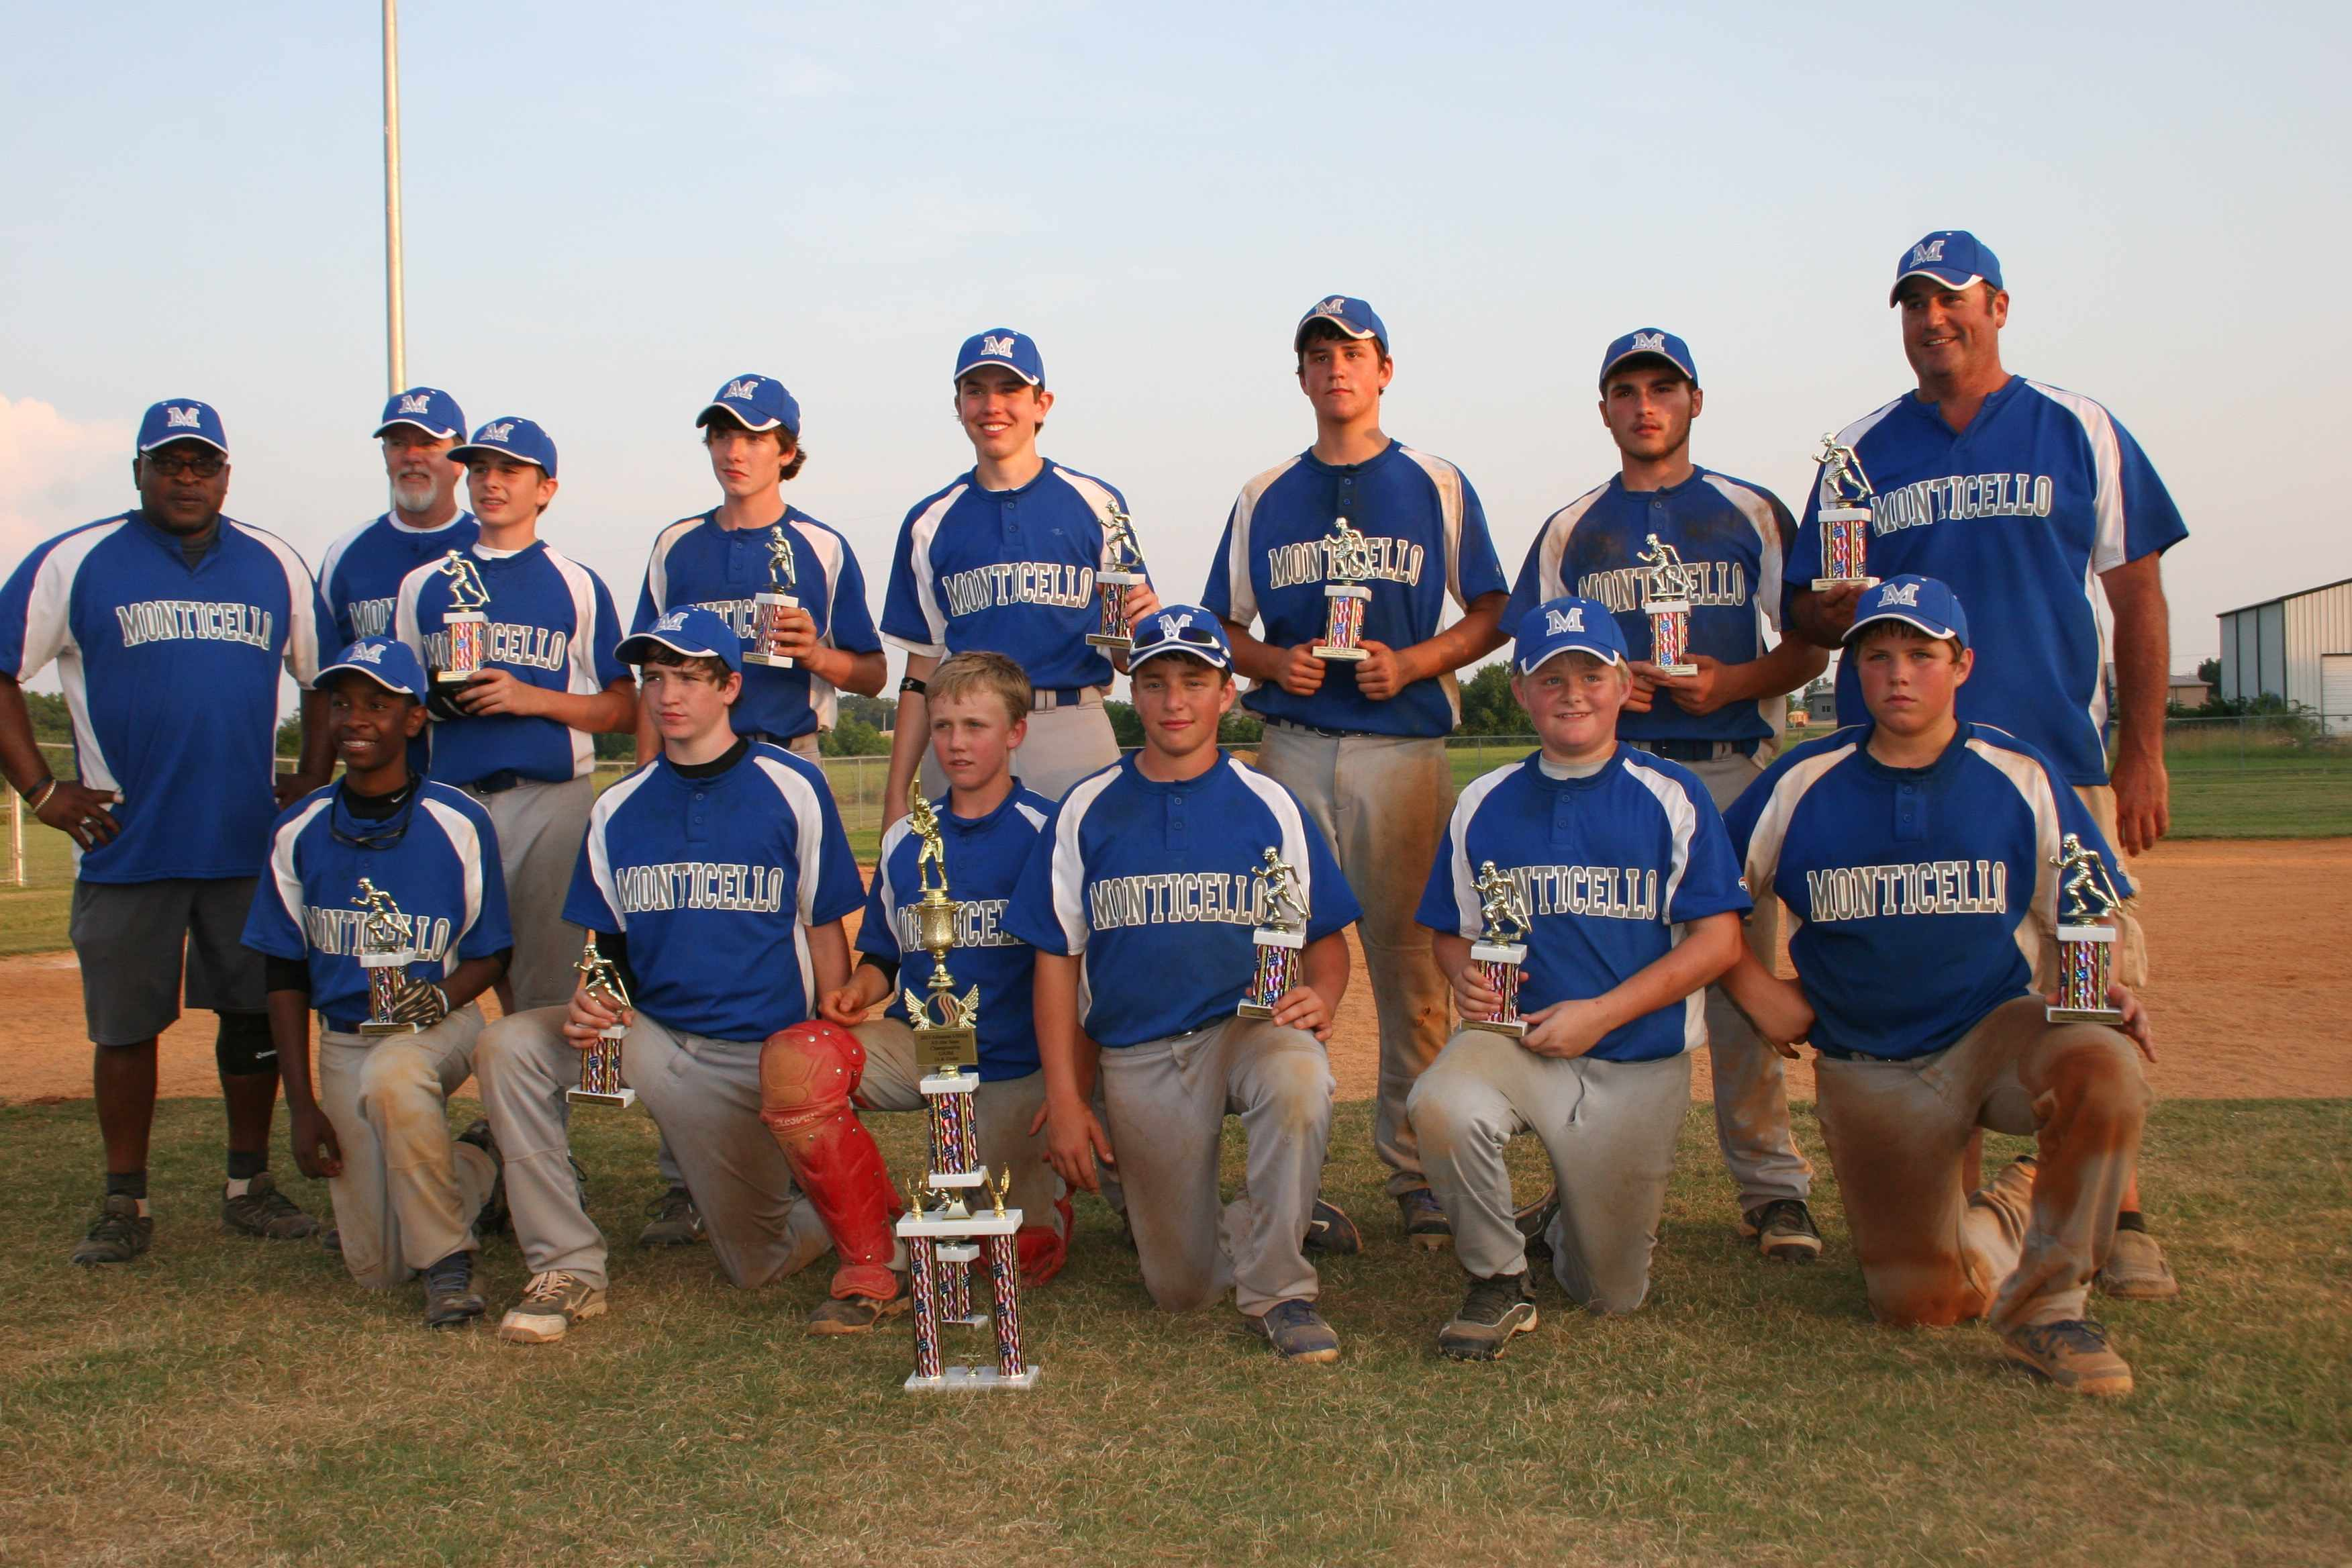 Youth Baseball Monticello Team Takes Title